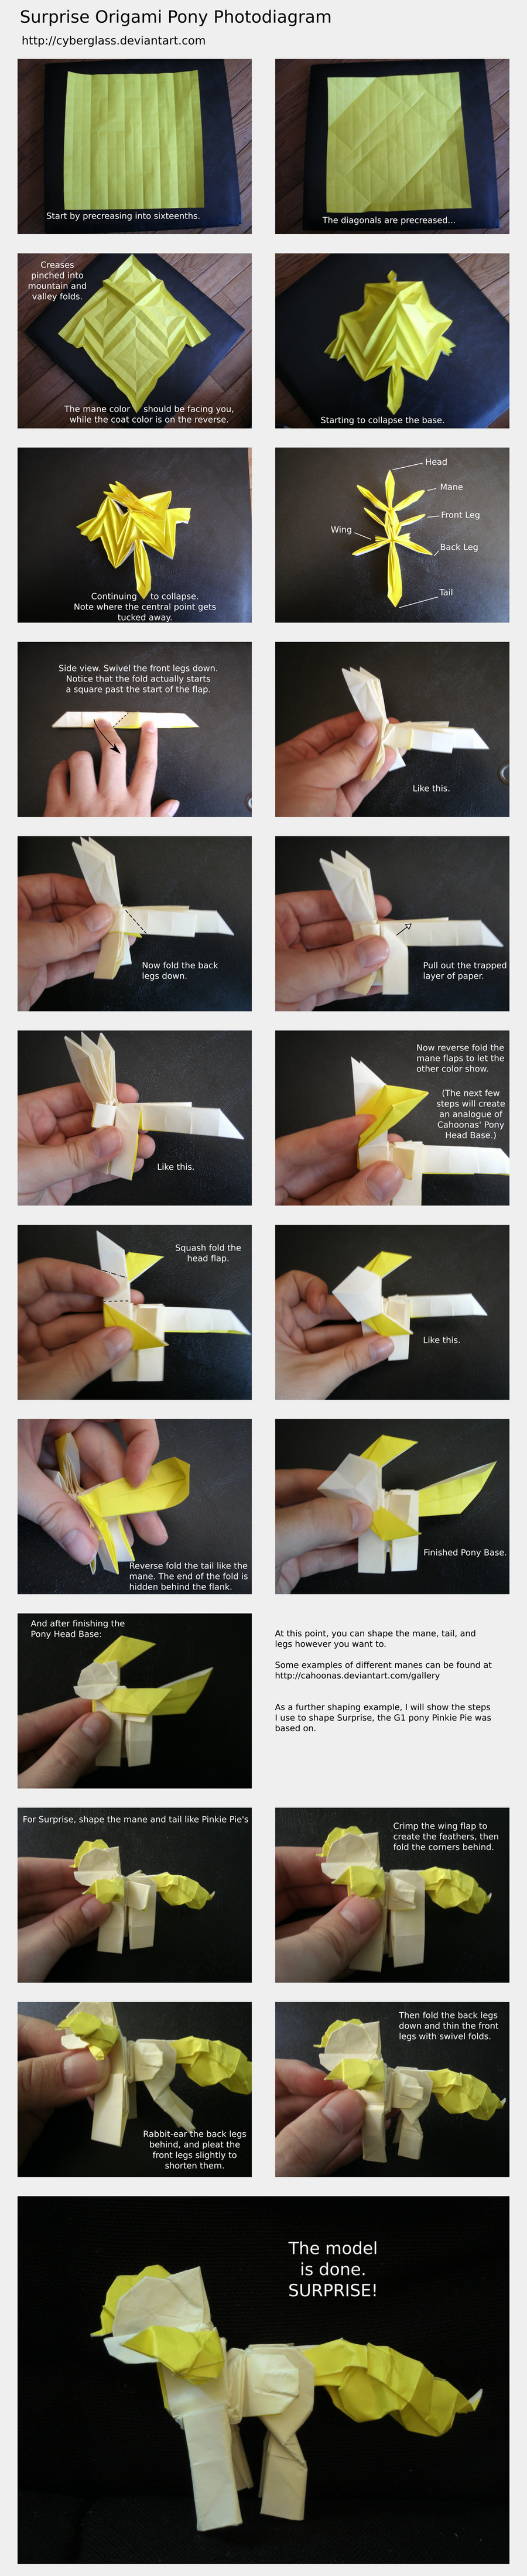 Surprise Origami Pony Photodiagram by Cyberglass